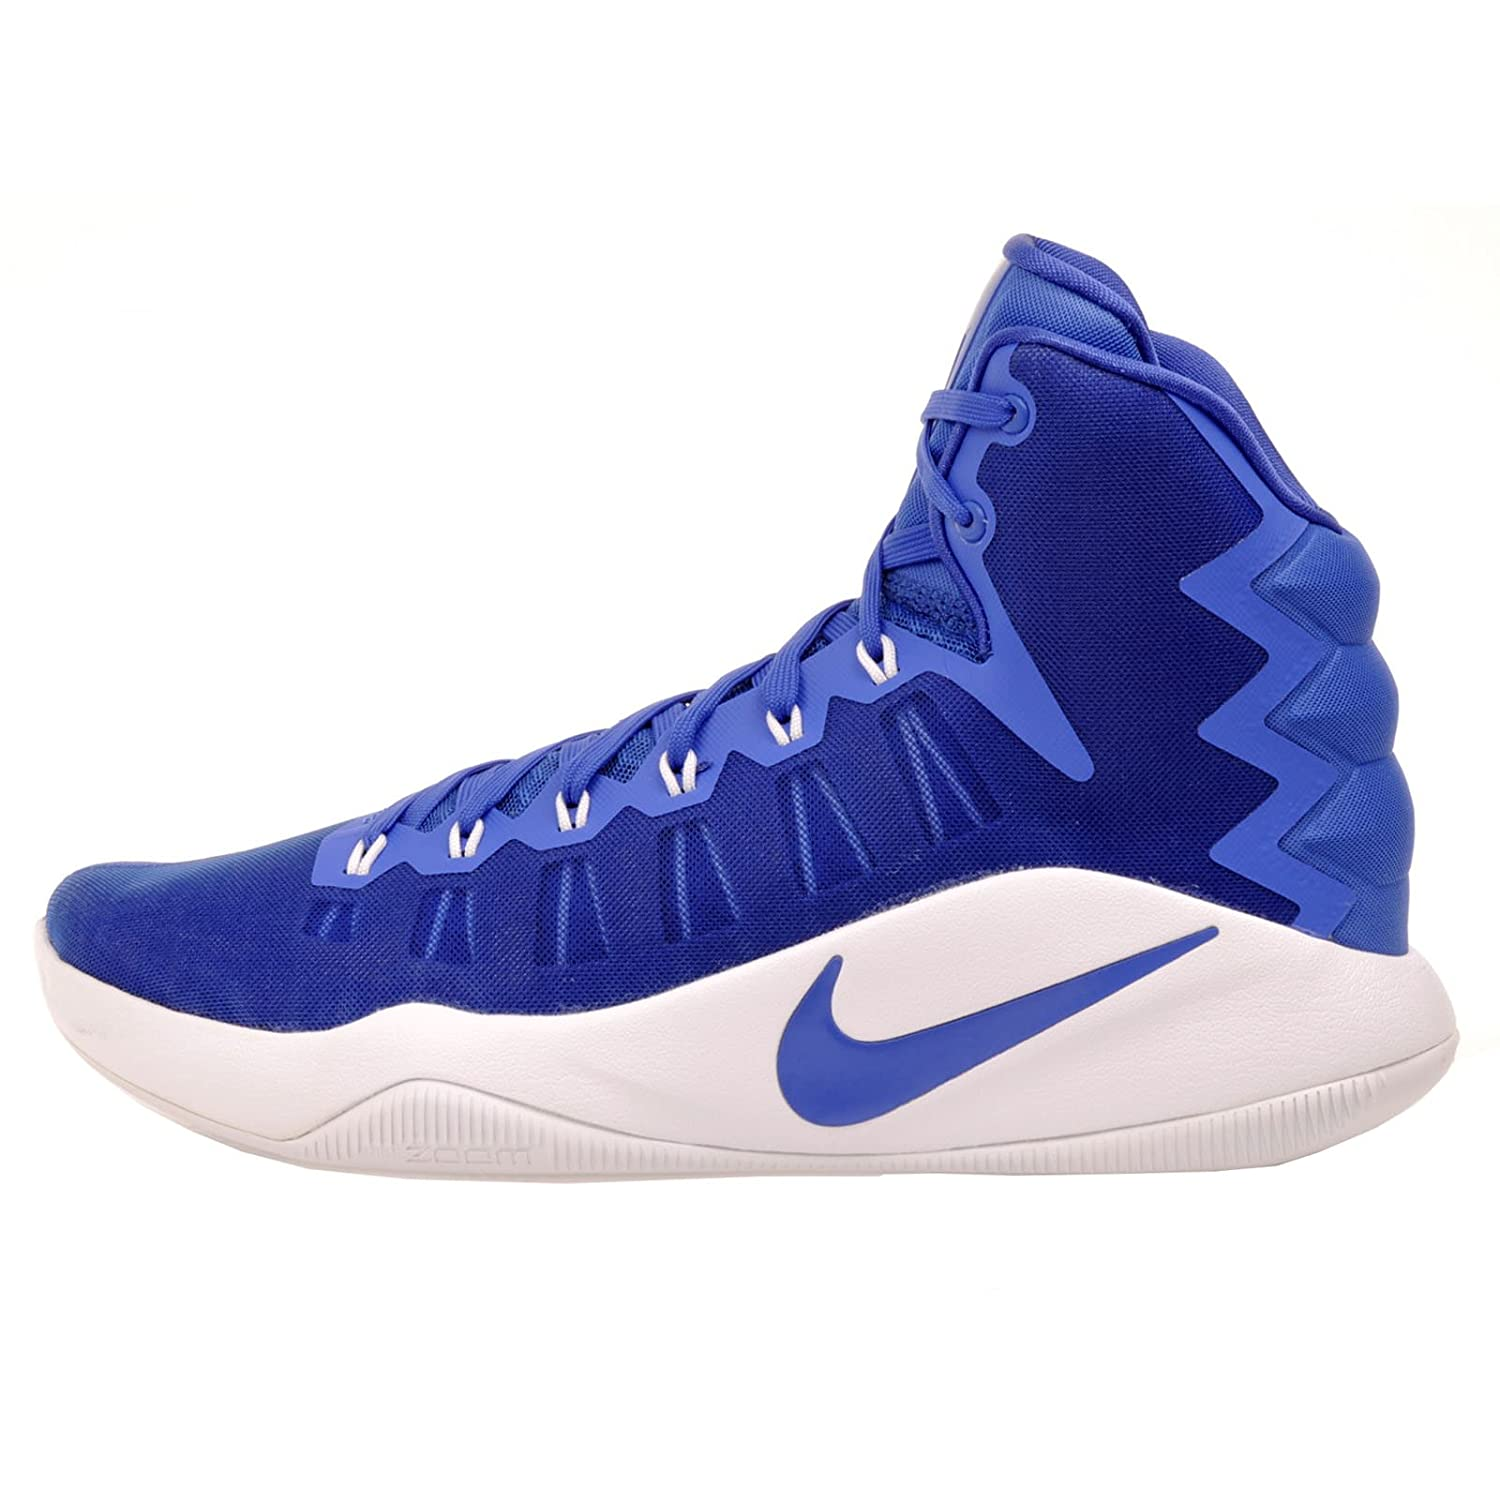 Nike Men's Hyperdunk 2016 TB Promo, GAME ROYAL/GAME ROYAL-WHITE